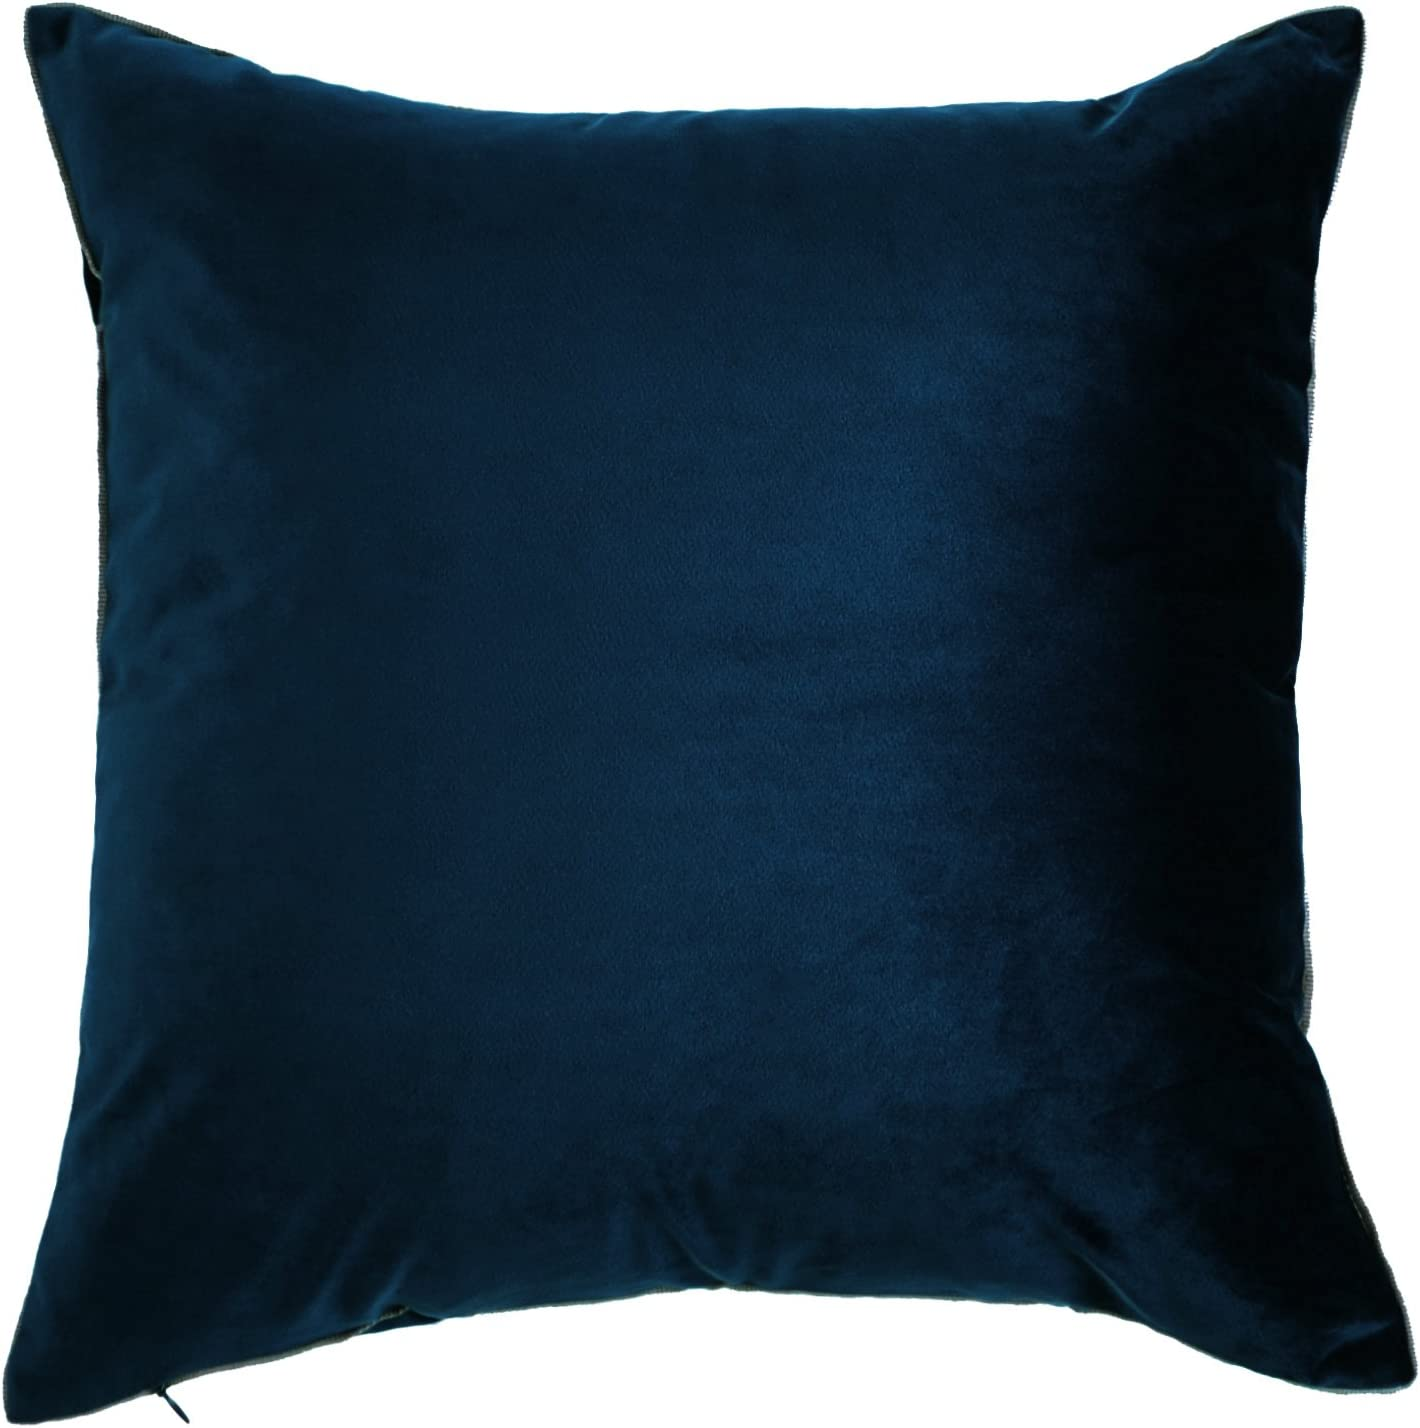 King Rose Gorgeous Home Decorative Throw Pillow Covers Super Luxury Soft Cushion Case for Sofa Bed Living Room Bed Decor 24 X 24 Inches Navy Blue